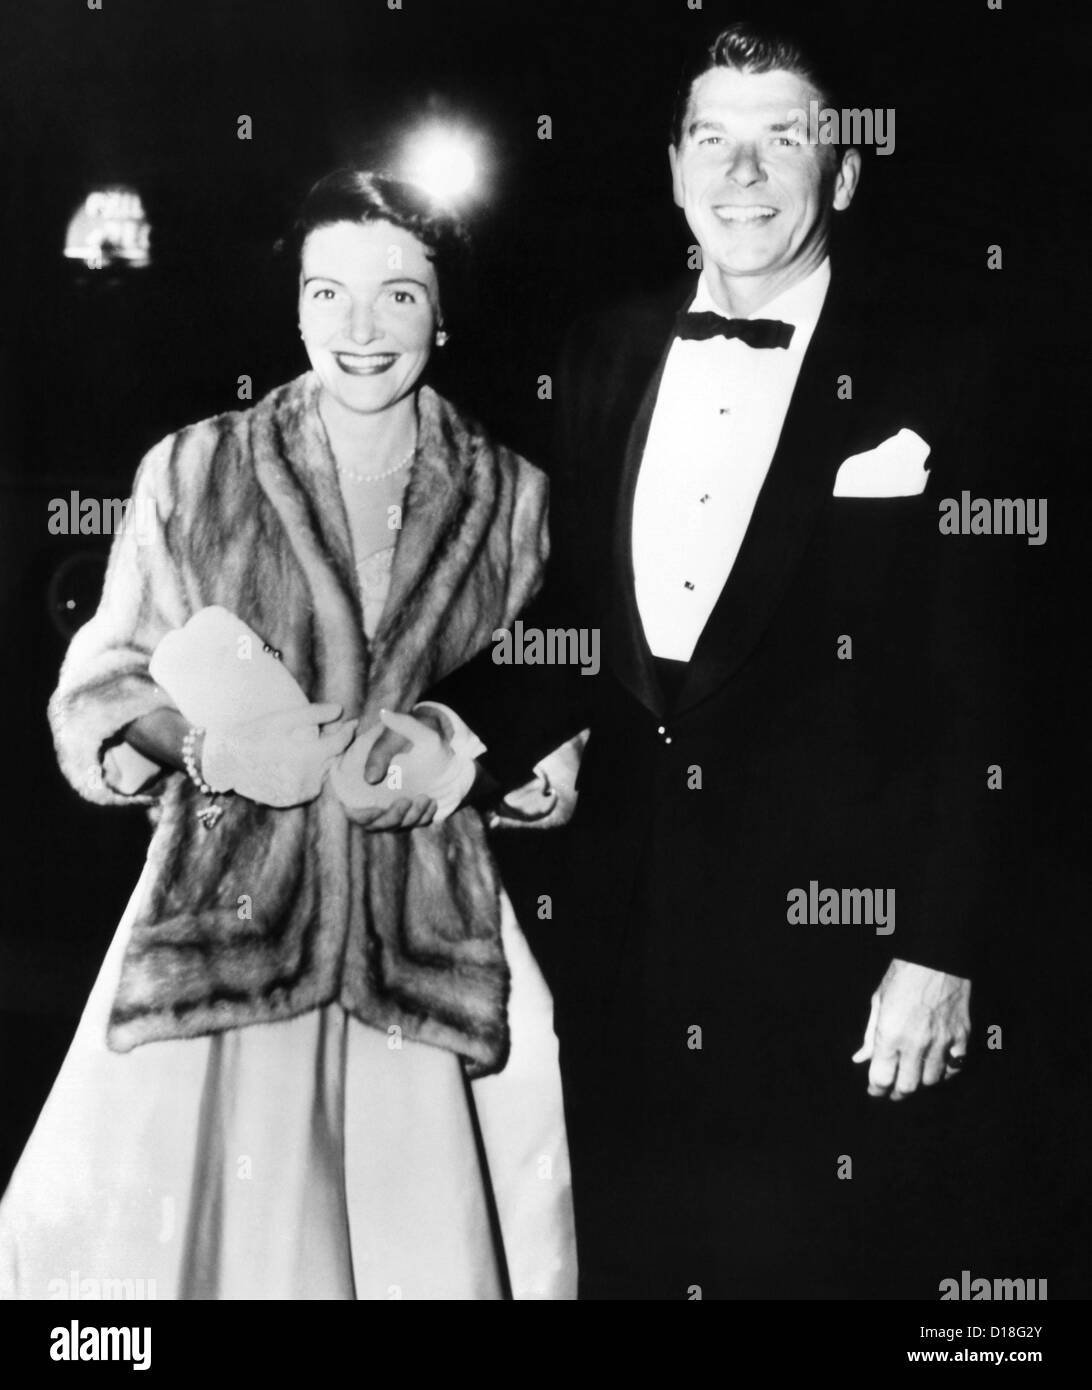 Ronald and Nancy Reagan attended the movie premiere of 'The High and the Mighty' in 1954 at Hollywood's - Stock Image